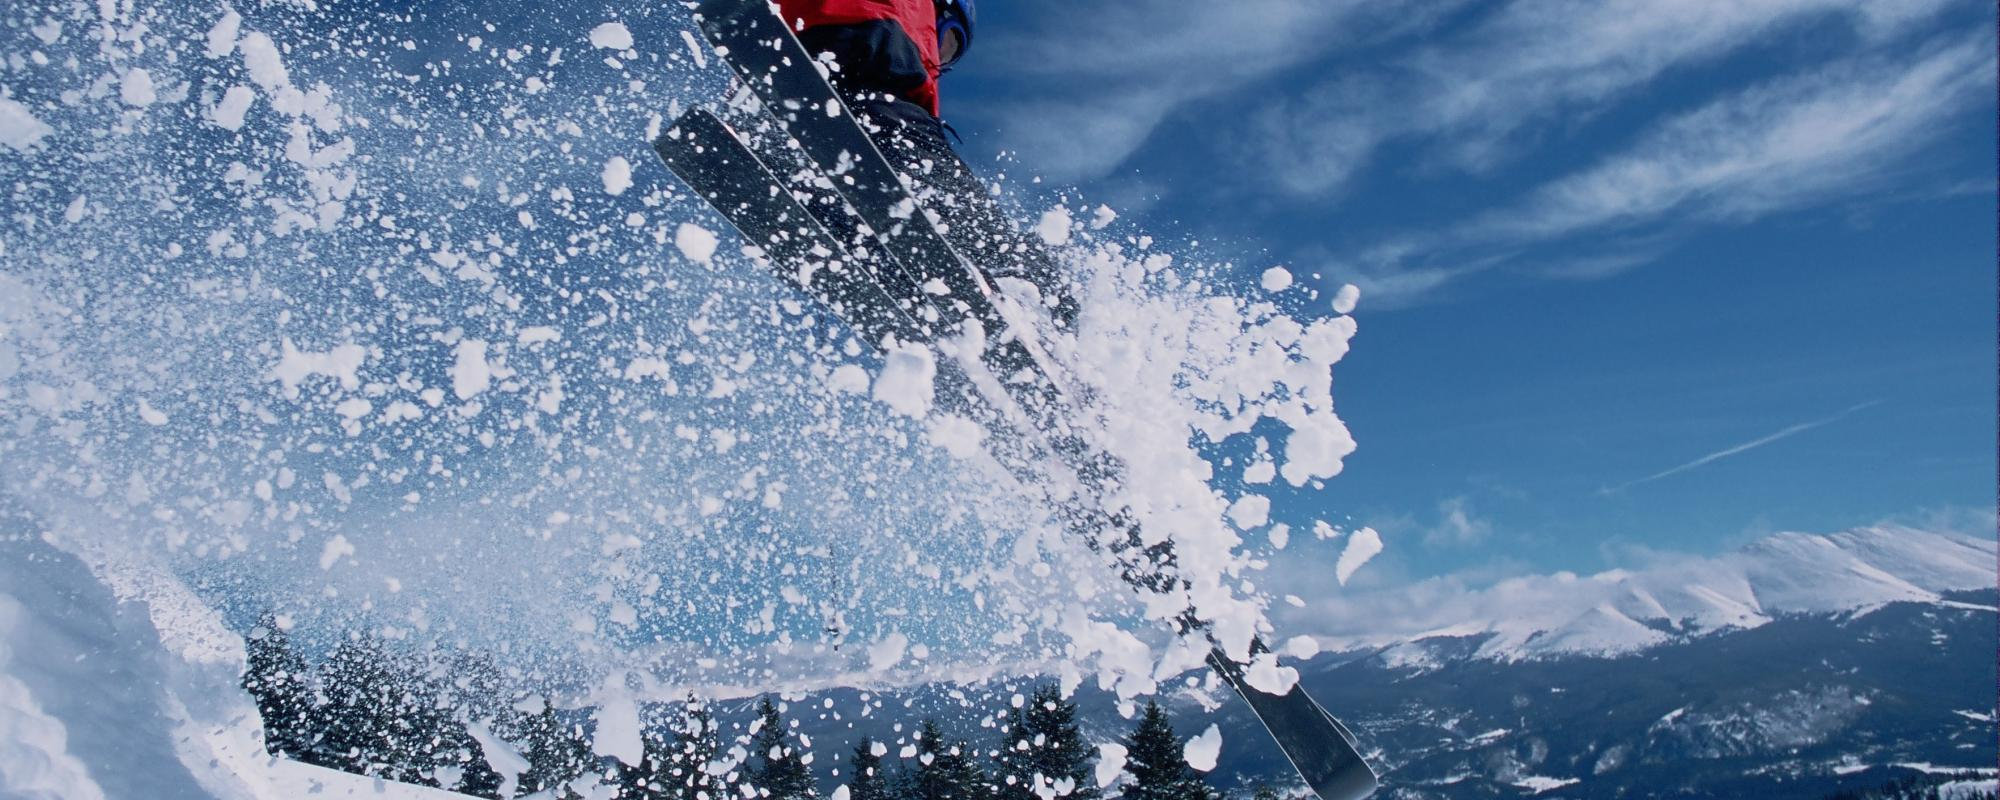 Skiier jumping in the snow covered mountains